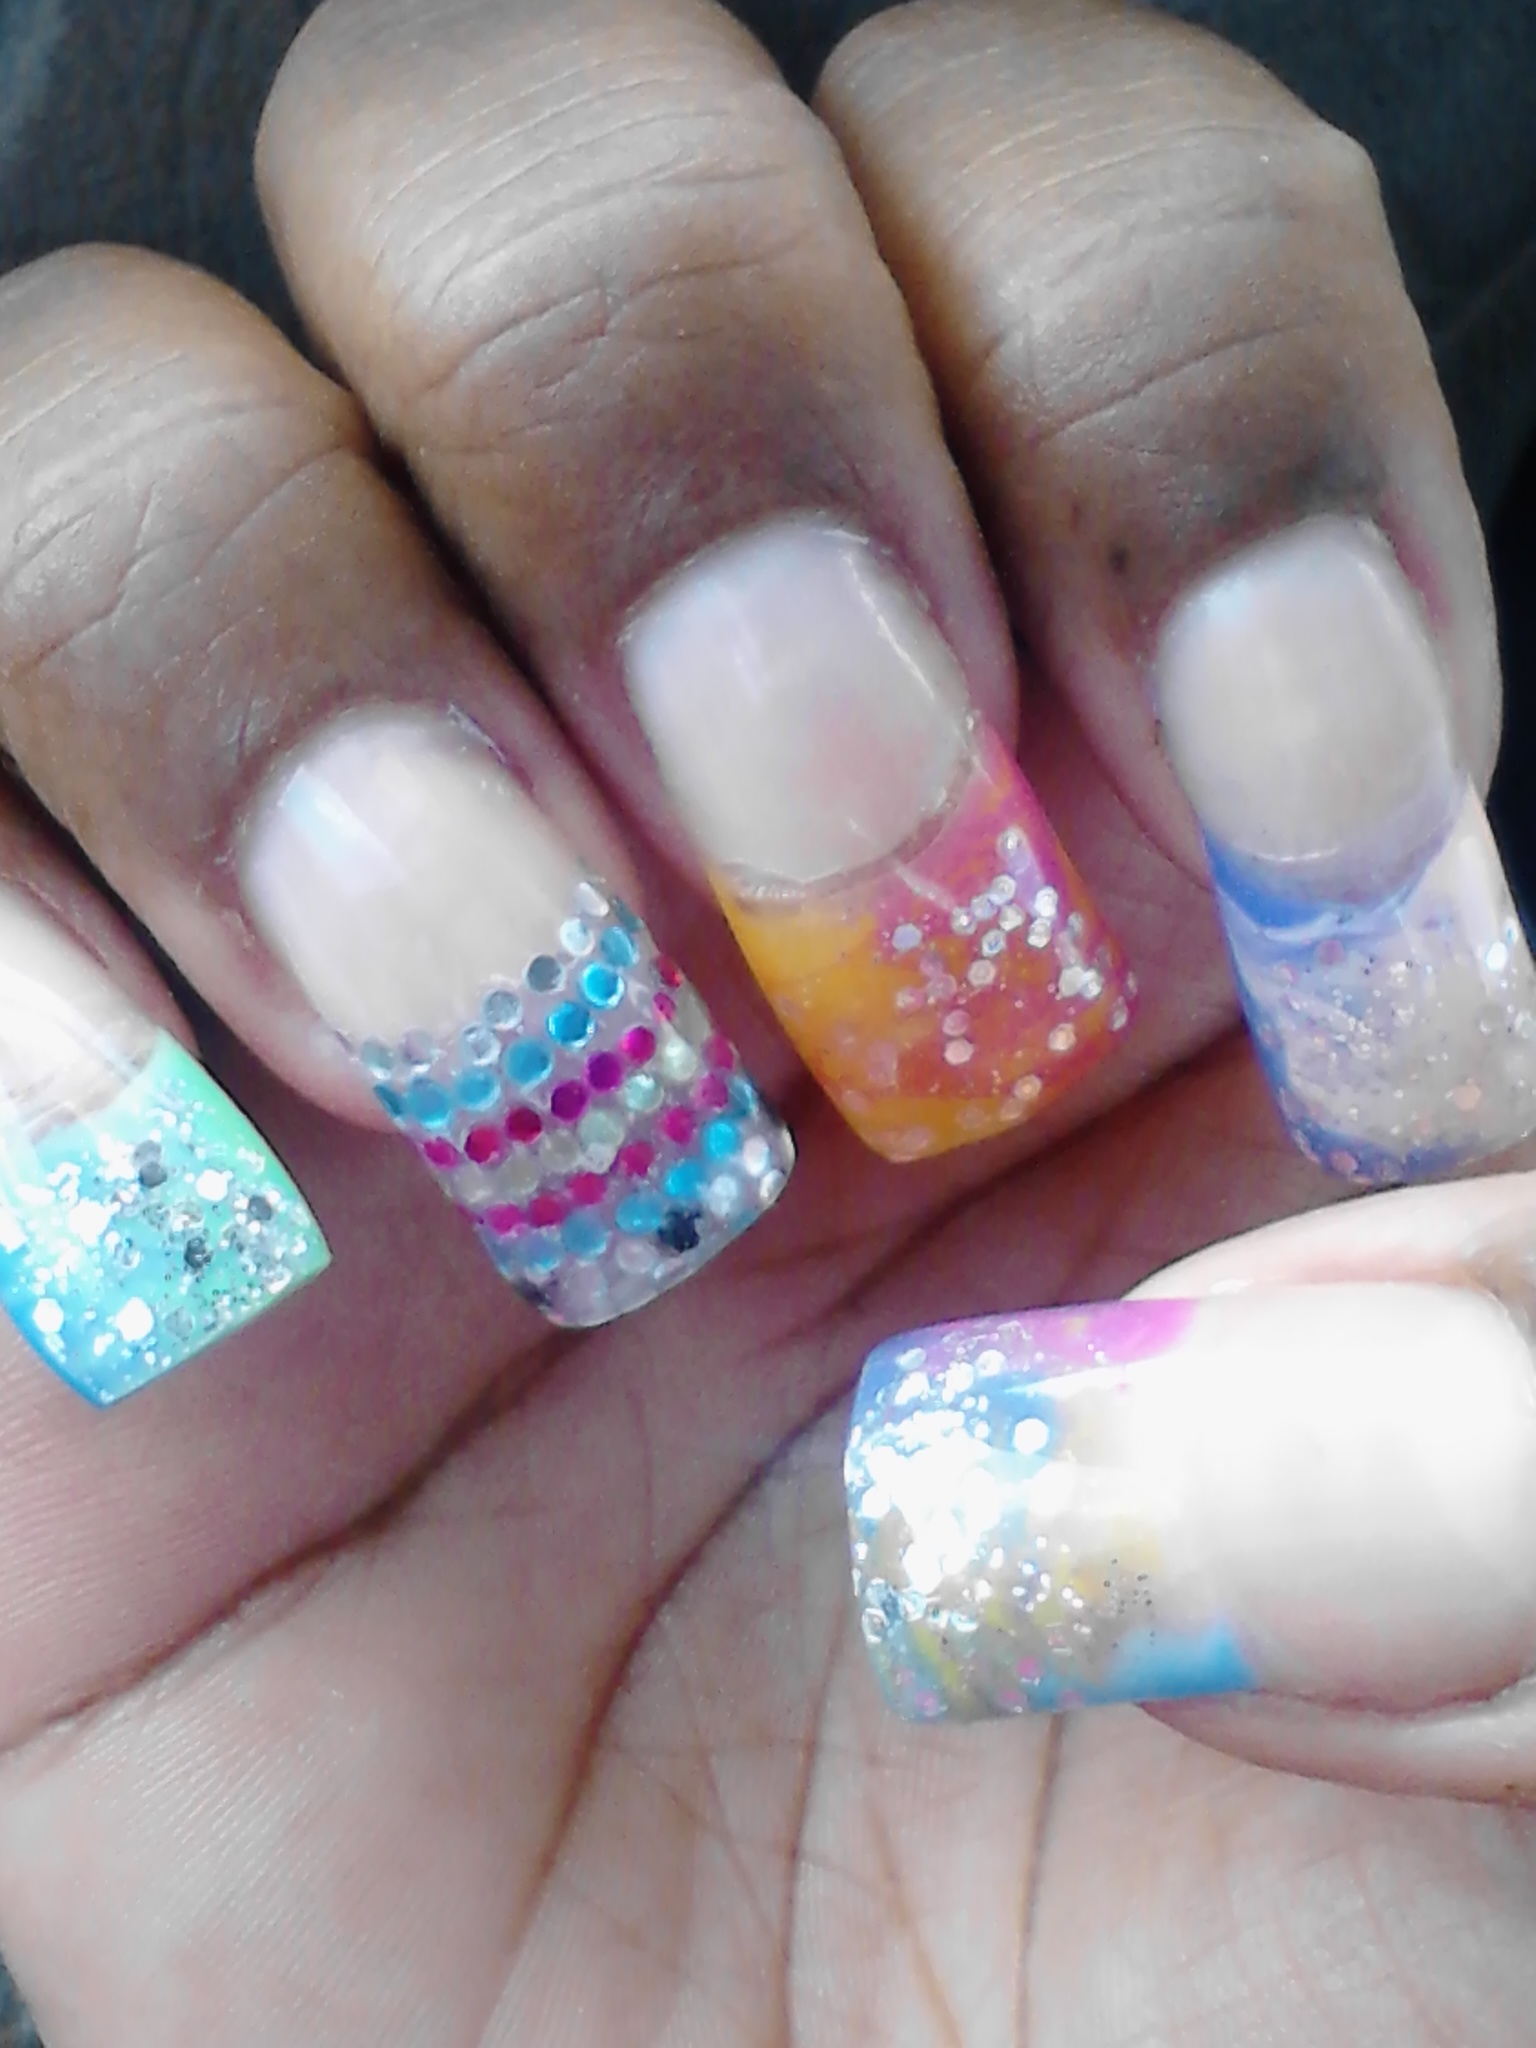 gel nail designs for fall 2014. nail swirl gel designs for fall 2014